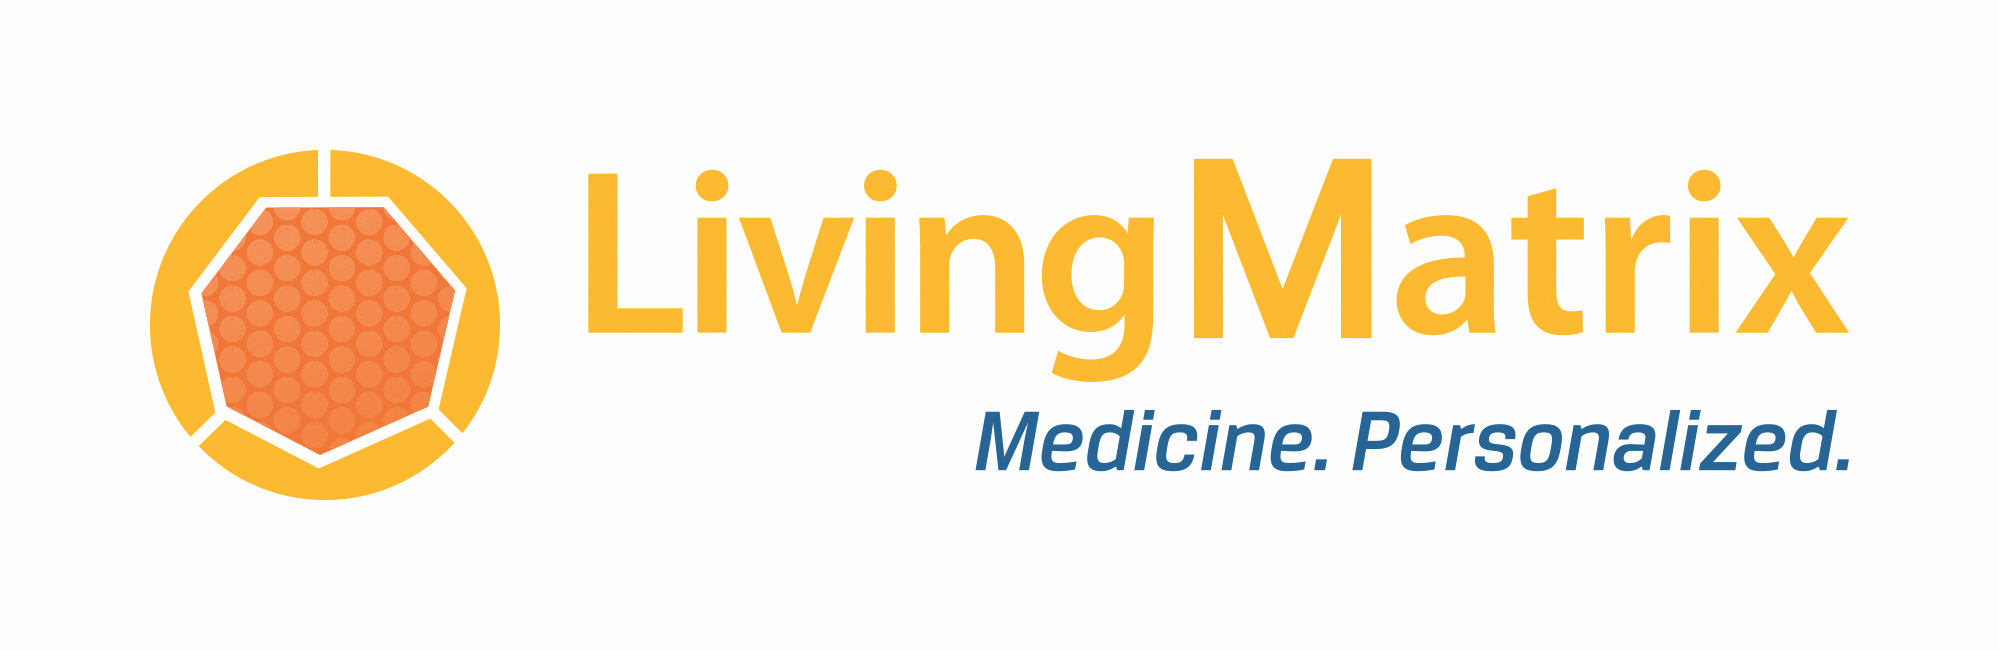 LivingMatrix Practitioner Research Network